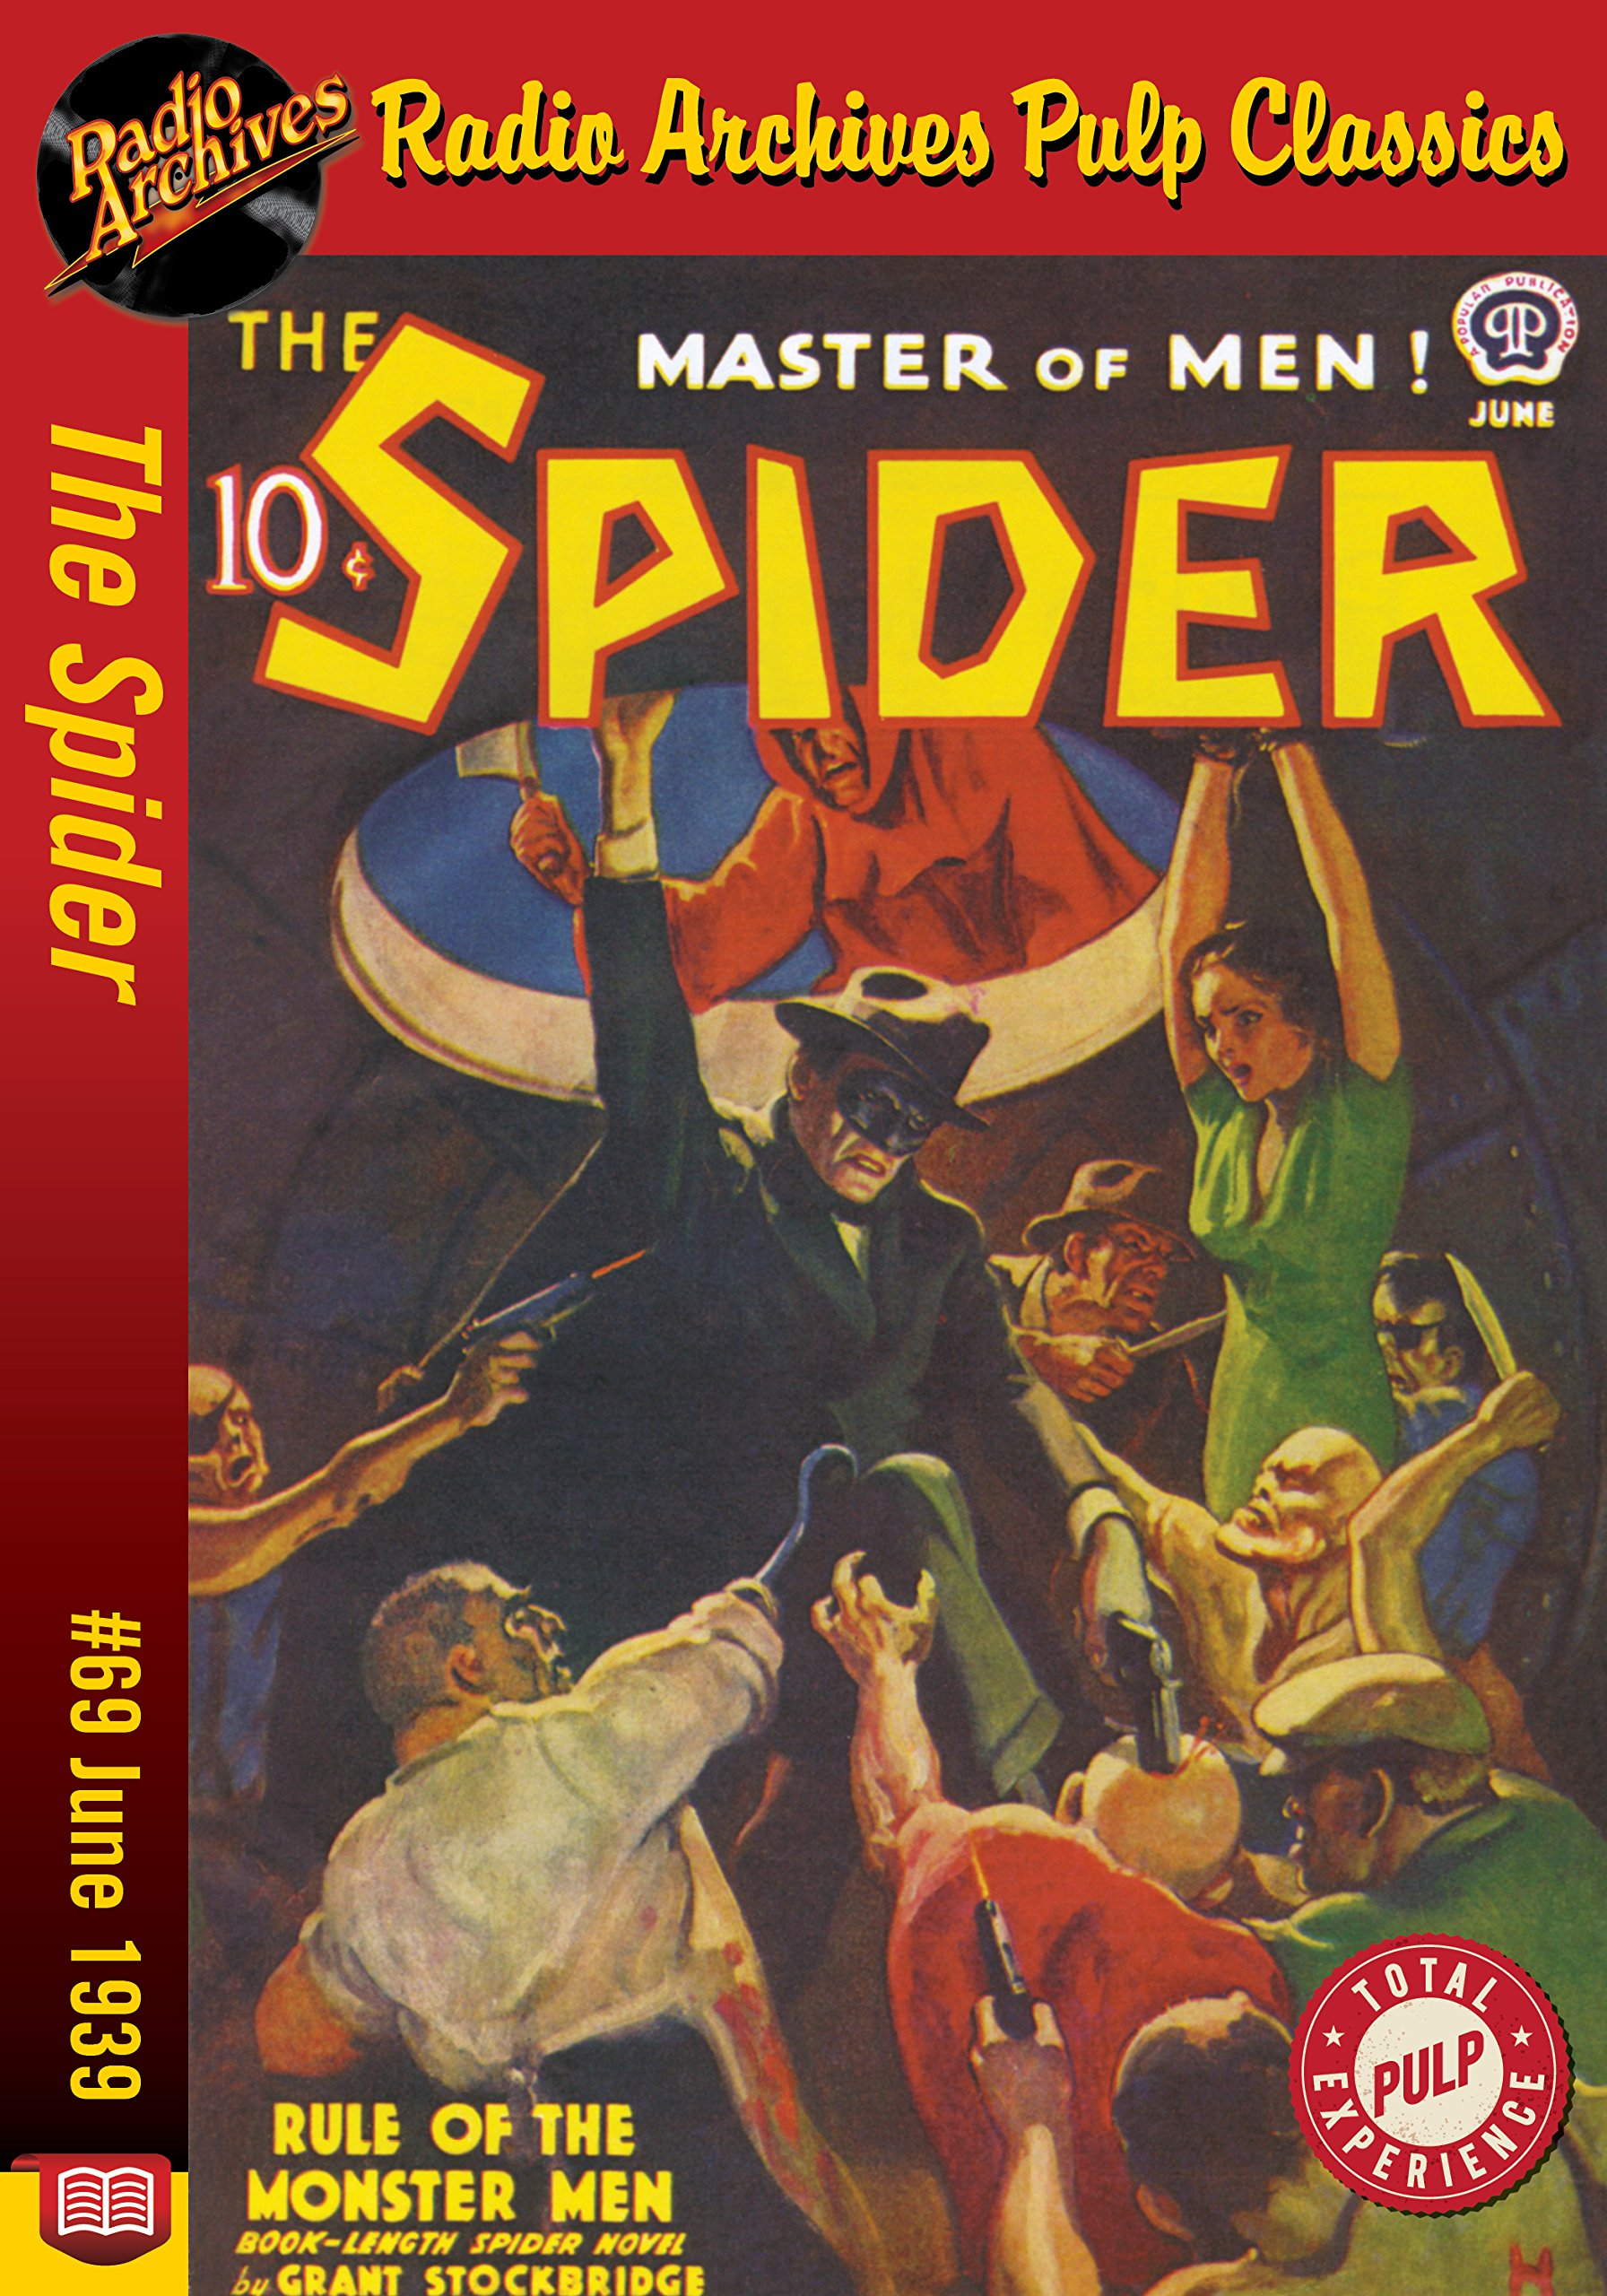 The Spider eBook #69: Rule of the Monster Men